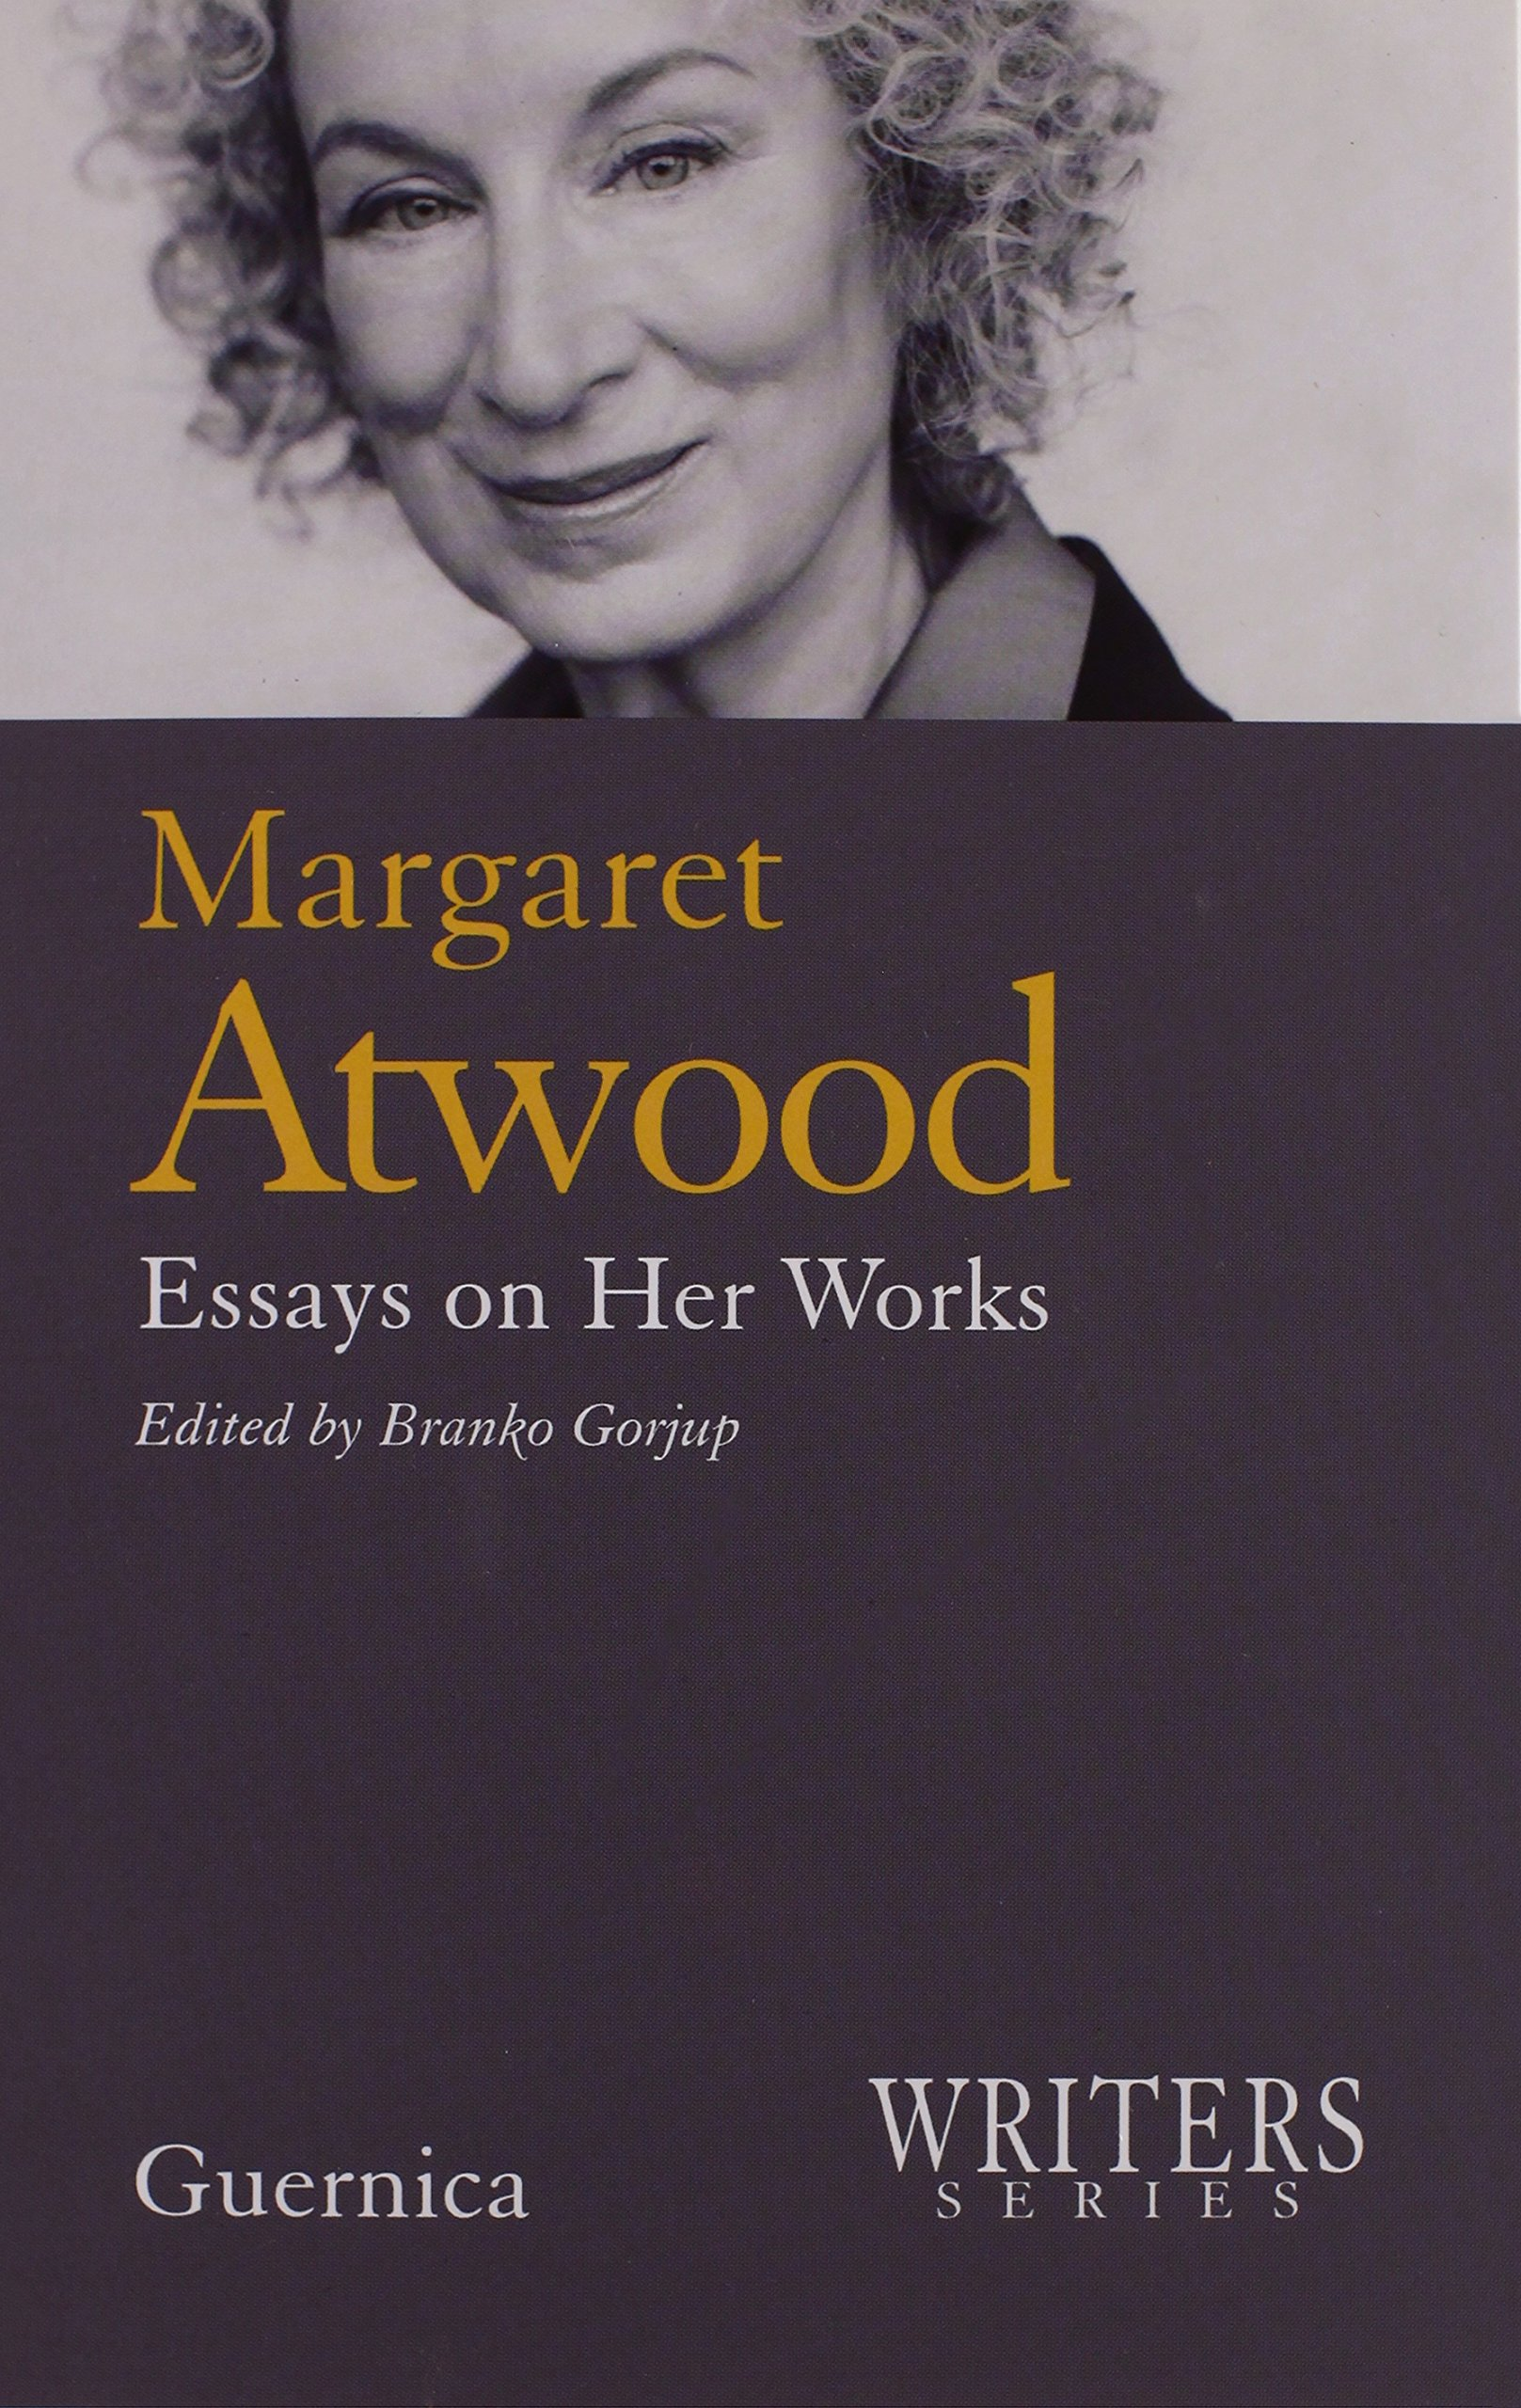 margaret atwood bibliography